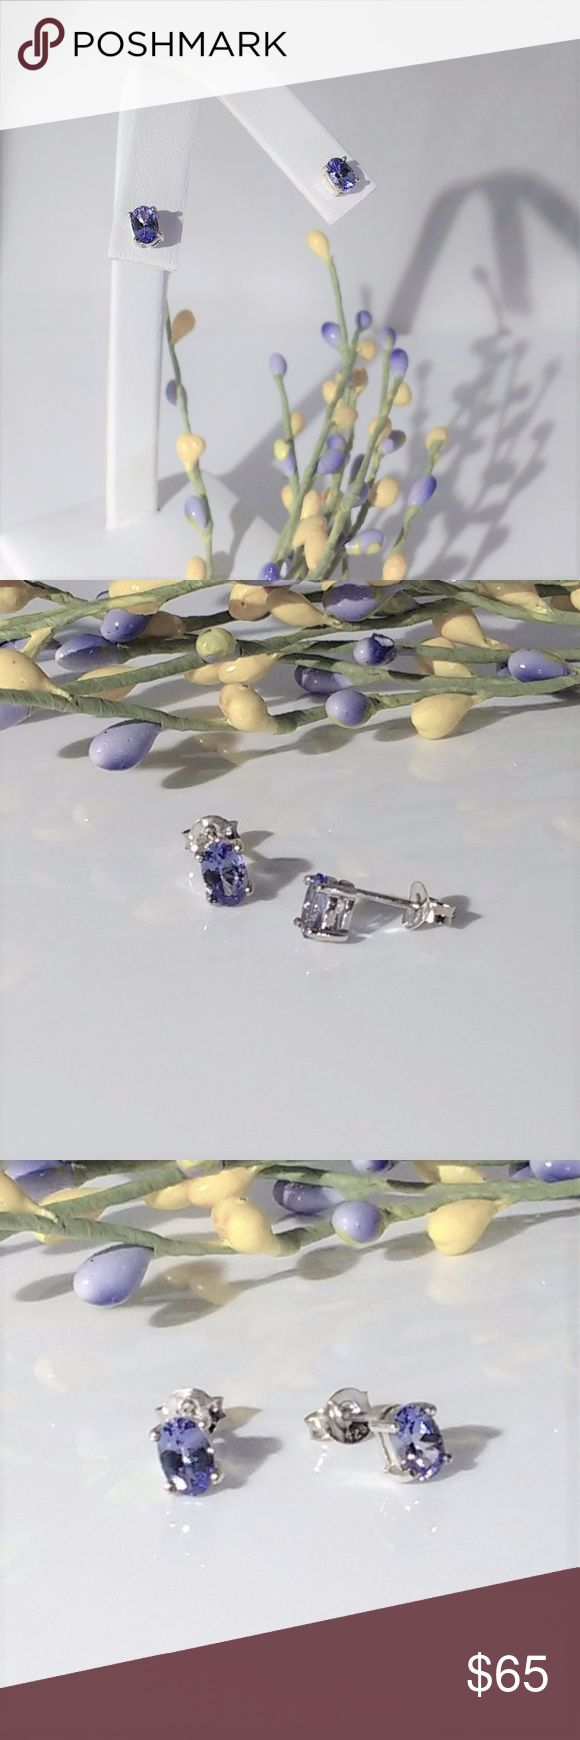 Elegant Tanzanite Gemstone Earrings These highly desirable light violet blue tanzanite gemstones measure 6x4mm each and are 0.9 carat tw. The exquisite genuine tanzanite earrings are on platinum over sterling silver posts. This pair of lovely earrings are sure to be a favorite. New.  Measurements and weights are approximate. Photos may be enlarged to show detail. Tanzanite Jewelry Earrings